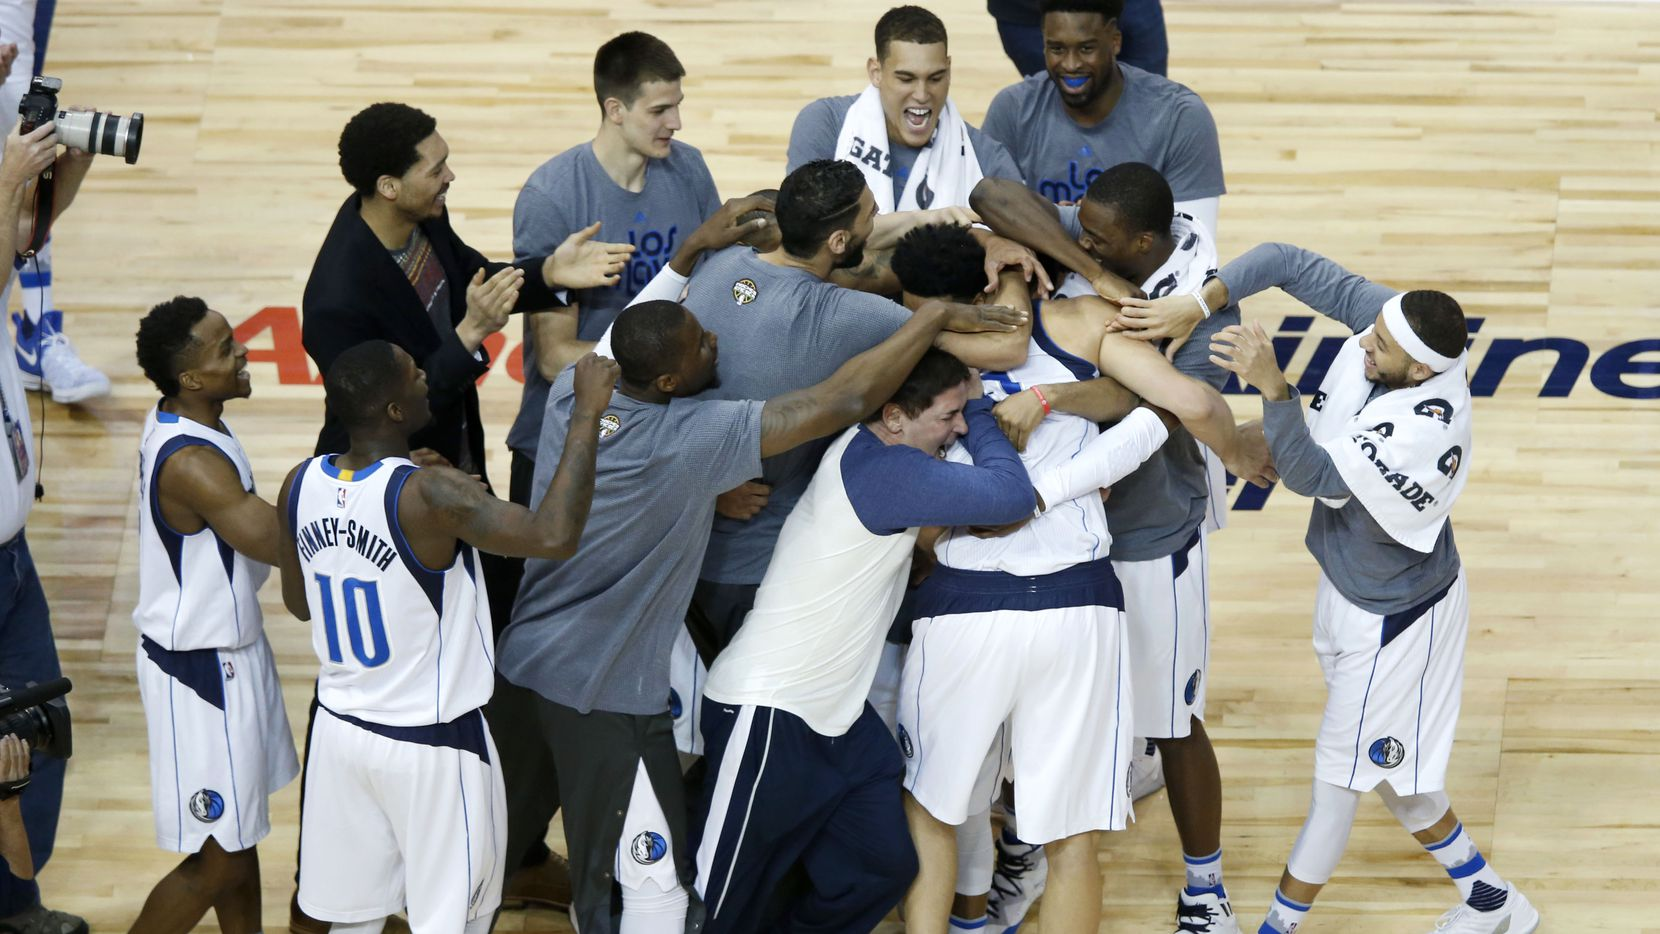 Dallas Mavericks forward Dirk Nowitzki (41) is congratulated by Dallas Mavericks teammates and owner Mark Cuban after surpassing the 30,000 point mark in his career during the second quarter of play at American Airlines Center in Dallas on Tuesday, March 7, 2017. (Vernon Bryant/The Dallas Morning News)